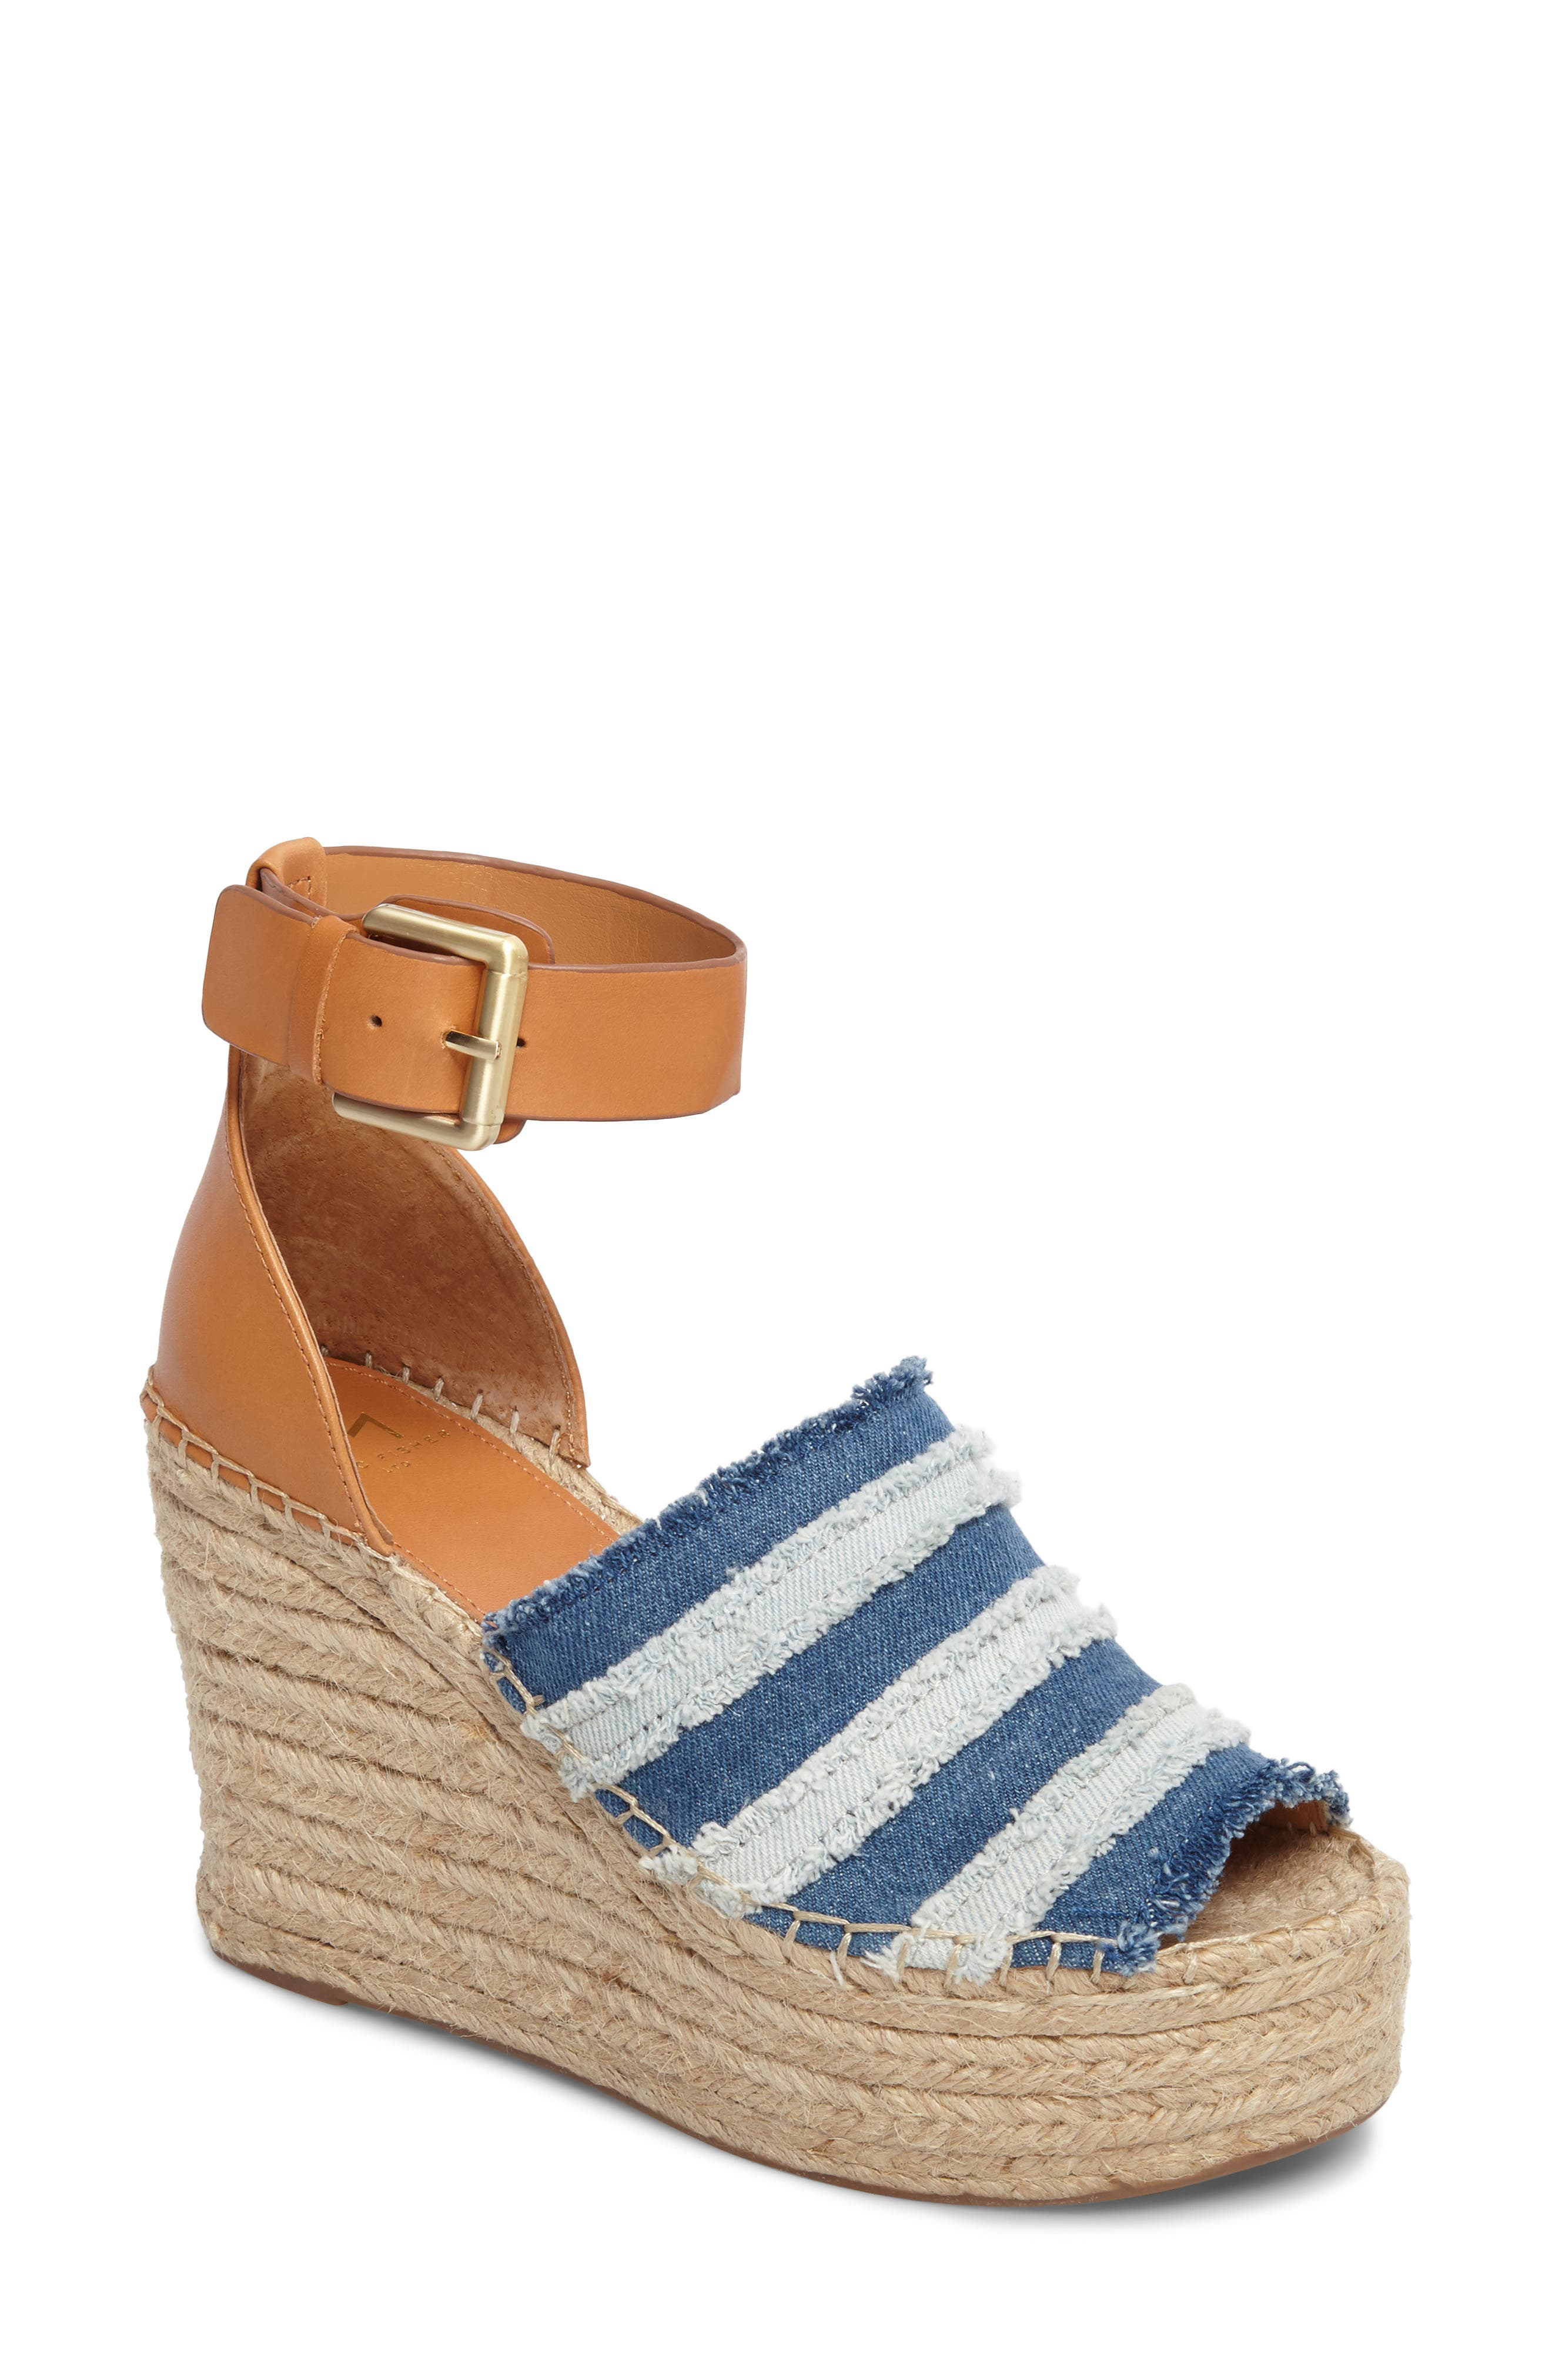 Adria Wedge Sandal,                             Main thumbnail 1, color,                             Washed Denim